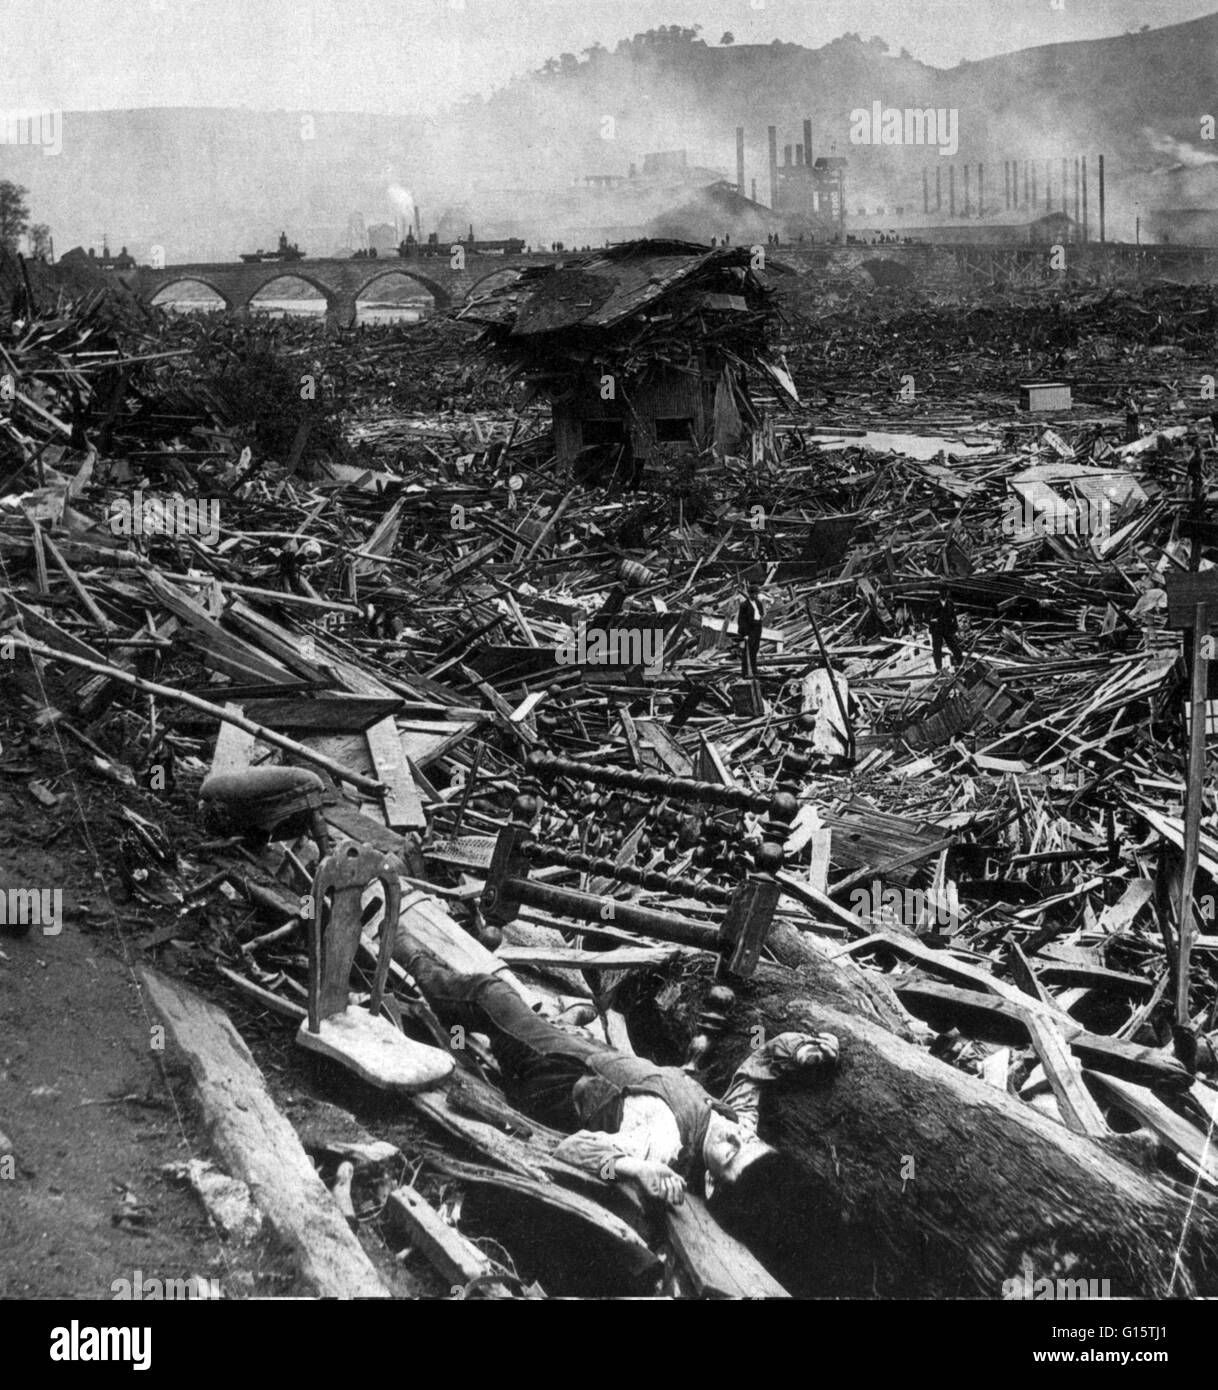 The Johnstown Flood (or Great Flood of 1889 as it became known locally) occurred on May 31, 1889. It was the result Stock Photo